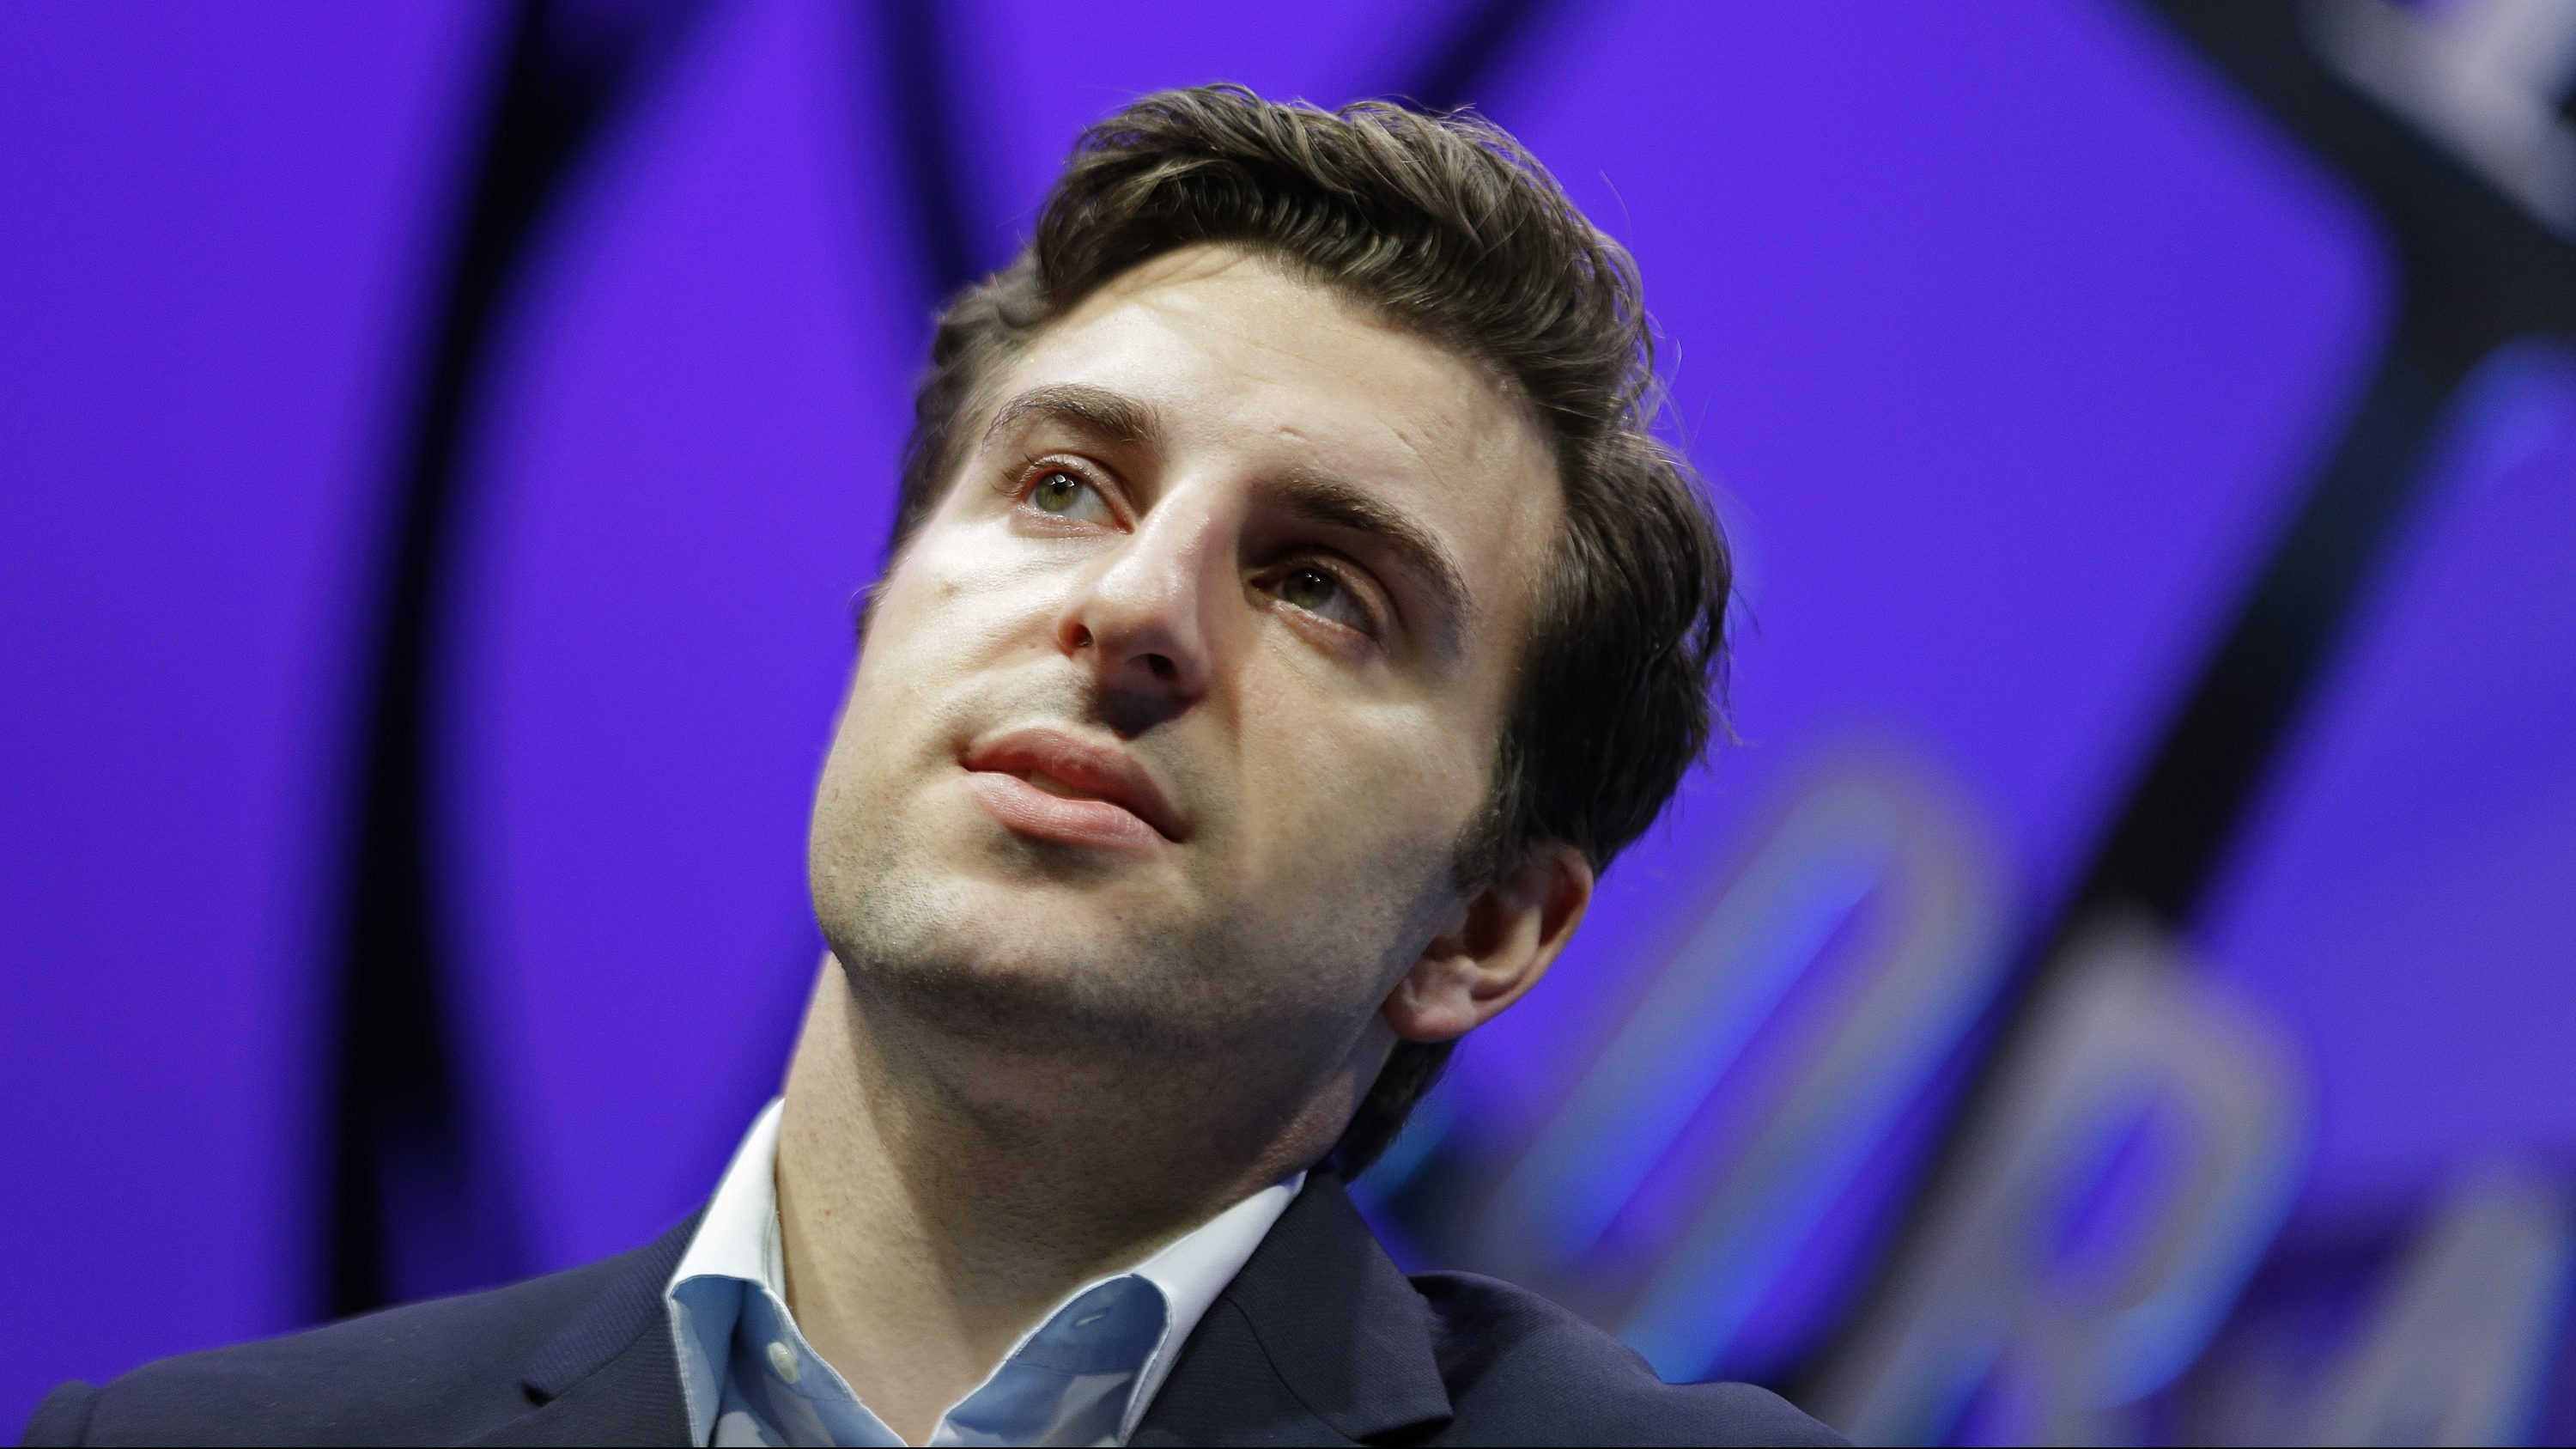 Airbnb co-founder and CEO Brian Chesky at the Fortune Global Forum Wednesday, Nov. 4, 2015, in San Francisco. San Francisco voters rejected two ballot measures prompted by the city's housing crisis. Voters rejected a proposal to restrict Airbnb and other short-term platforms and a ballot measure to freeze construction of luxury housing in the Mission District, one of San Francisco's most coveted neighborhoods. Airbnb, by far the world's largest home-share platform, spent more than $8 million to defeat the measure with a blitz of advertising. (AP Photo/Eric Risberg)